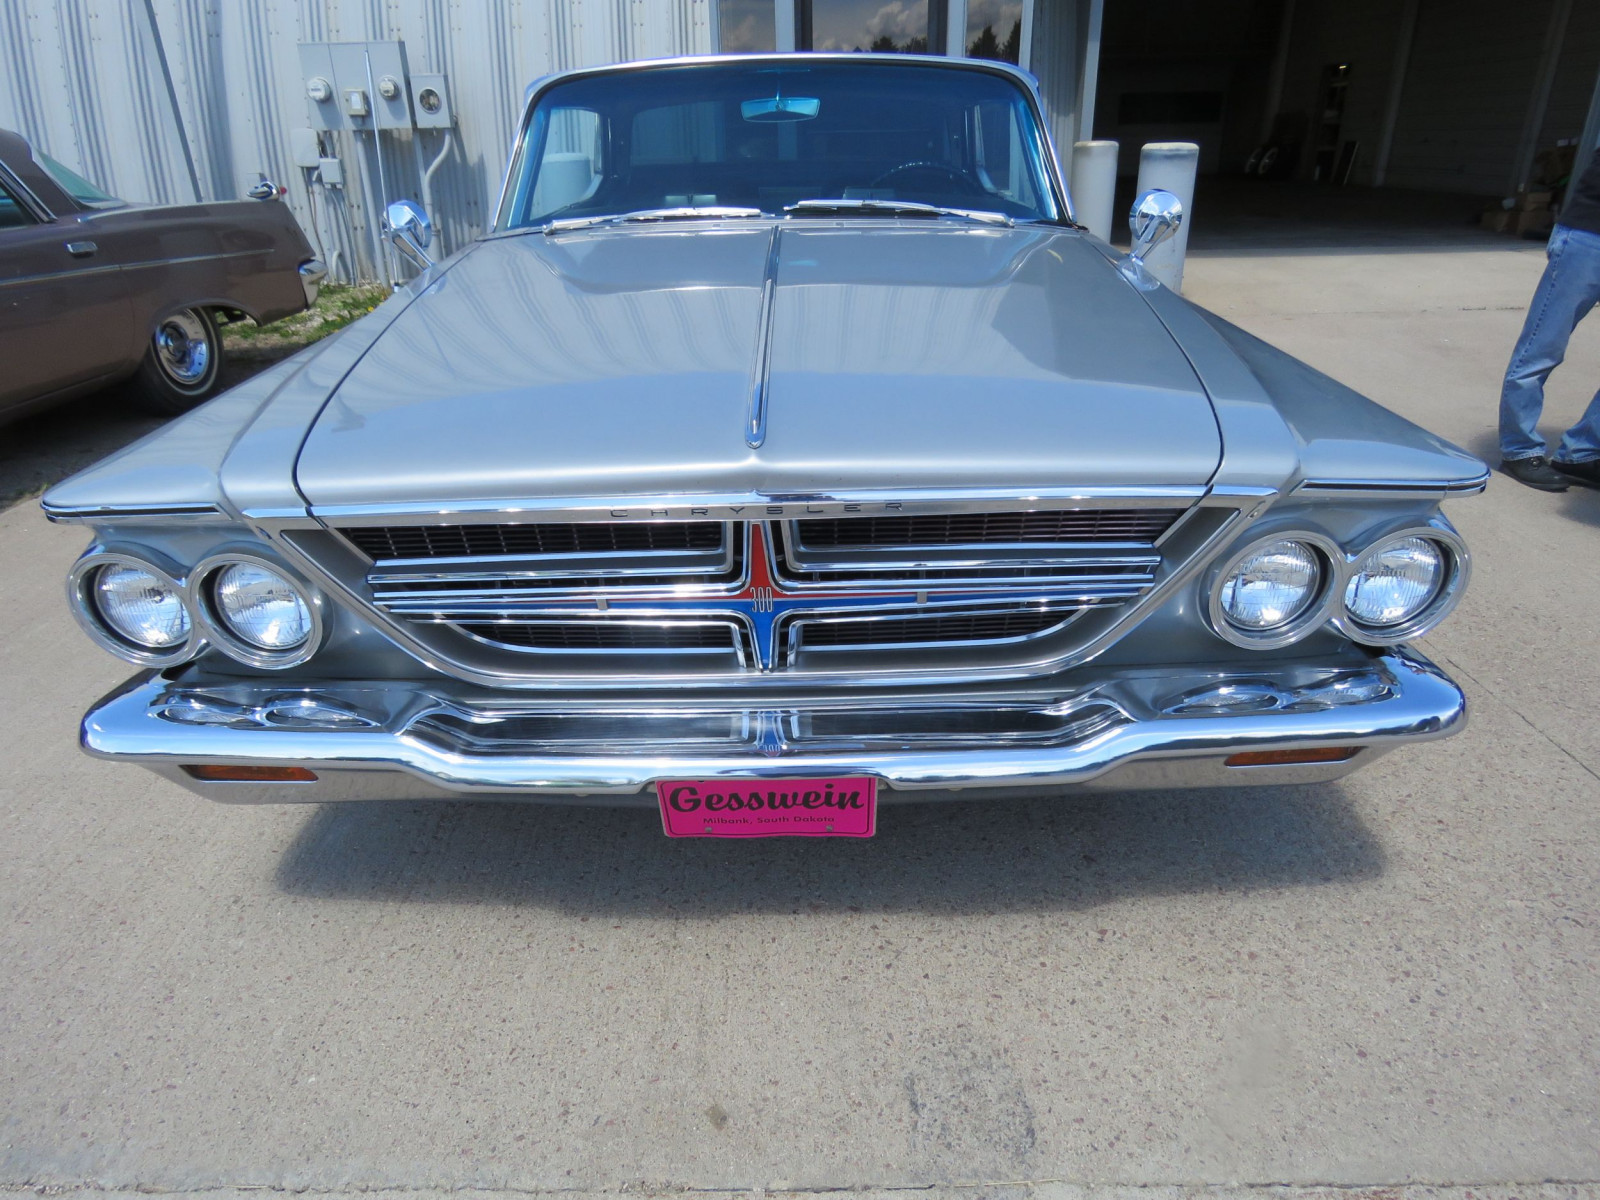 1964 Chrysler 300 Silver Edition 2dr HT - Image 3